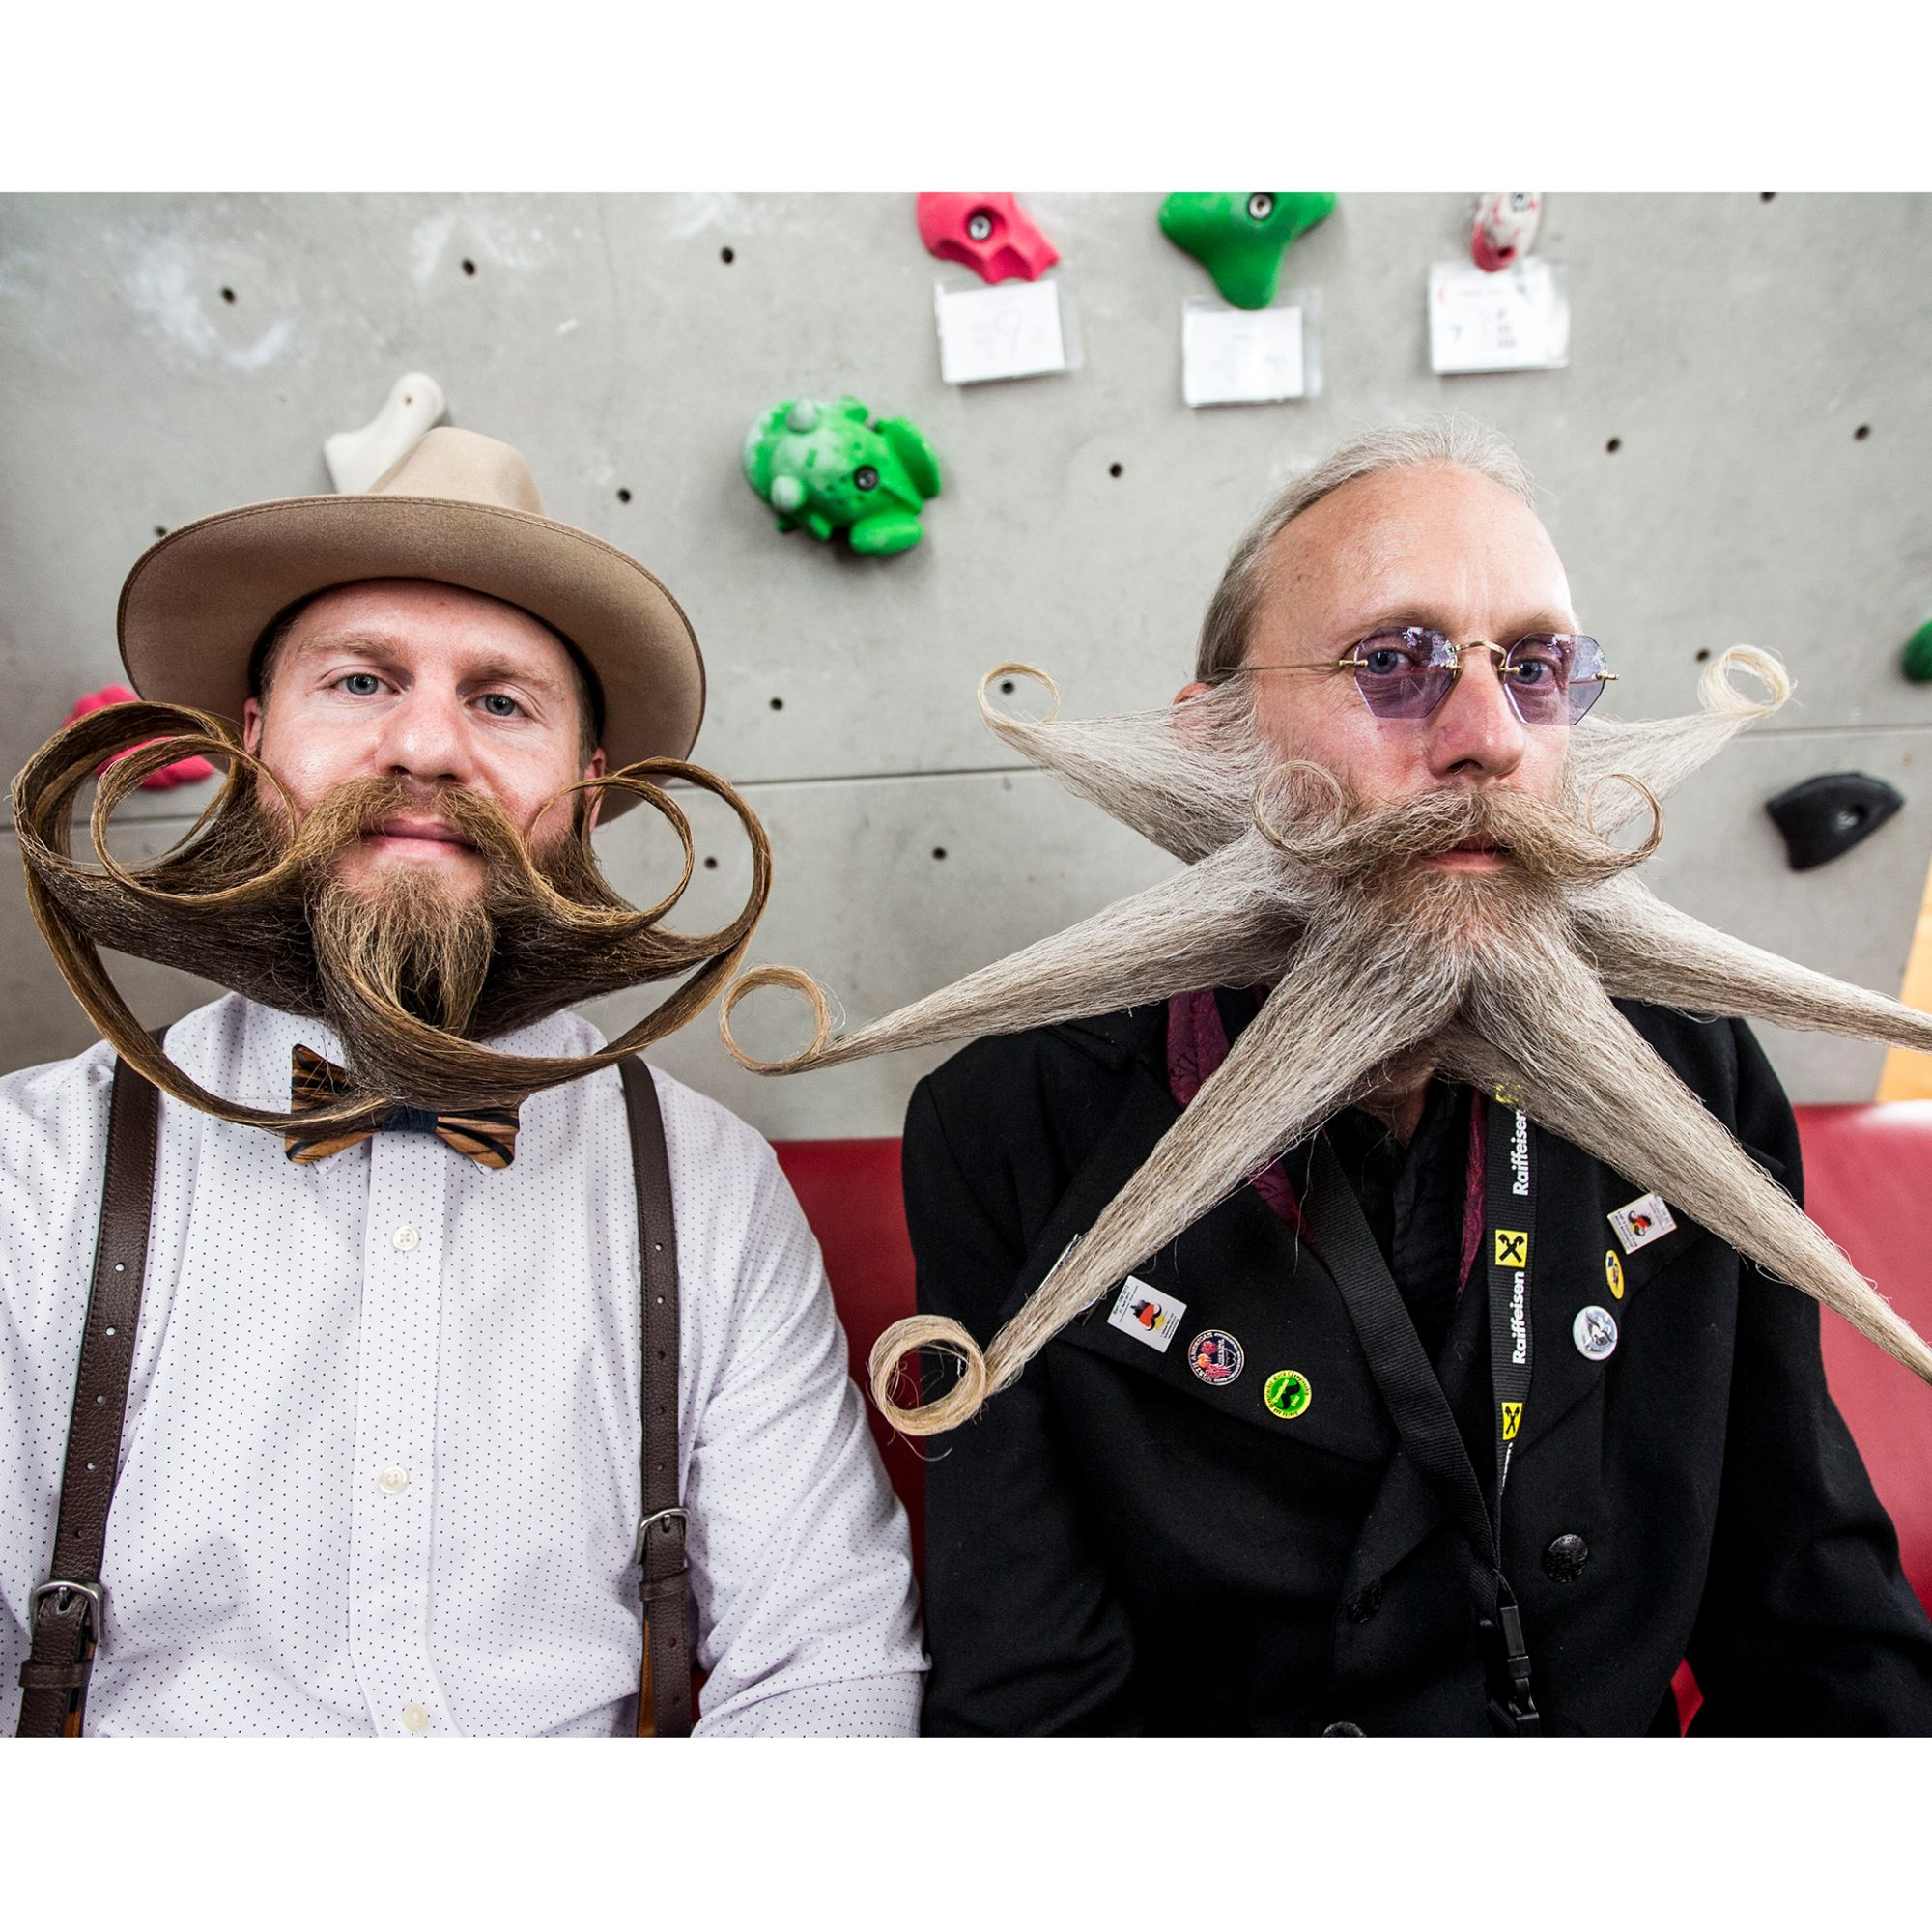 FWX JAMESON GIVING FREE TRIMS DURING MOVEMBER